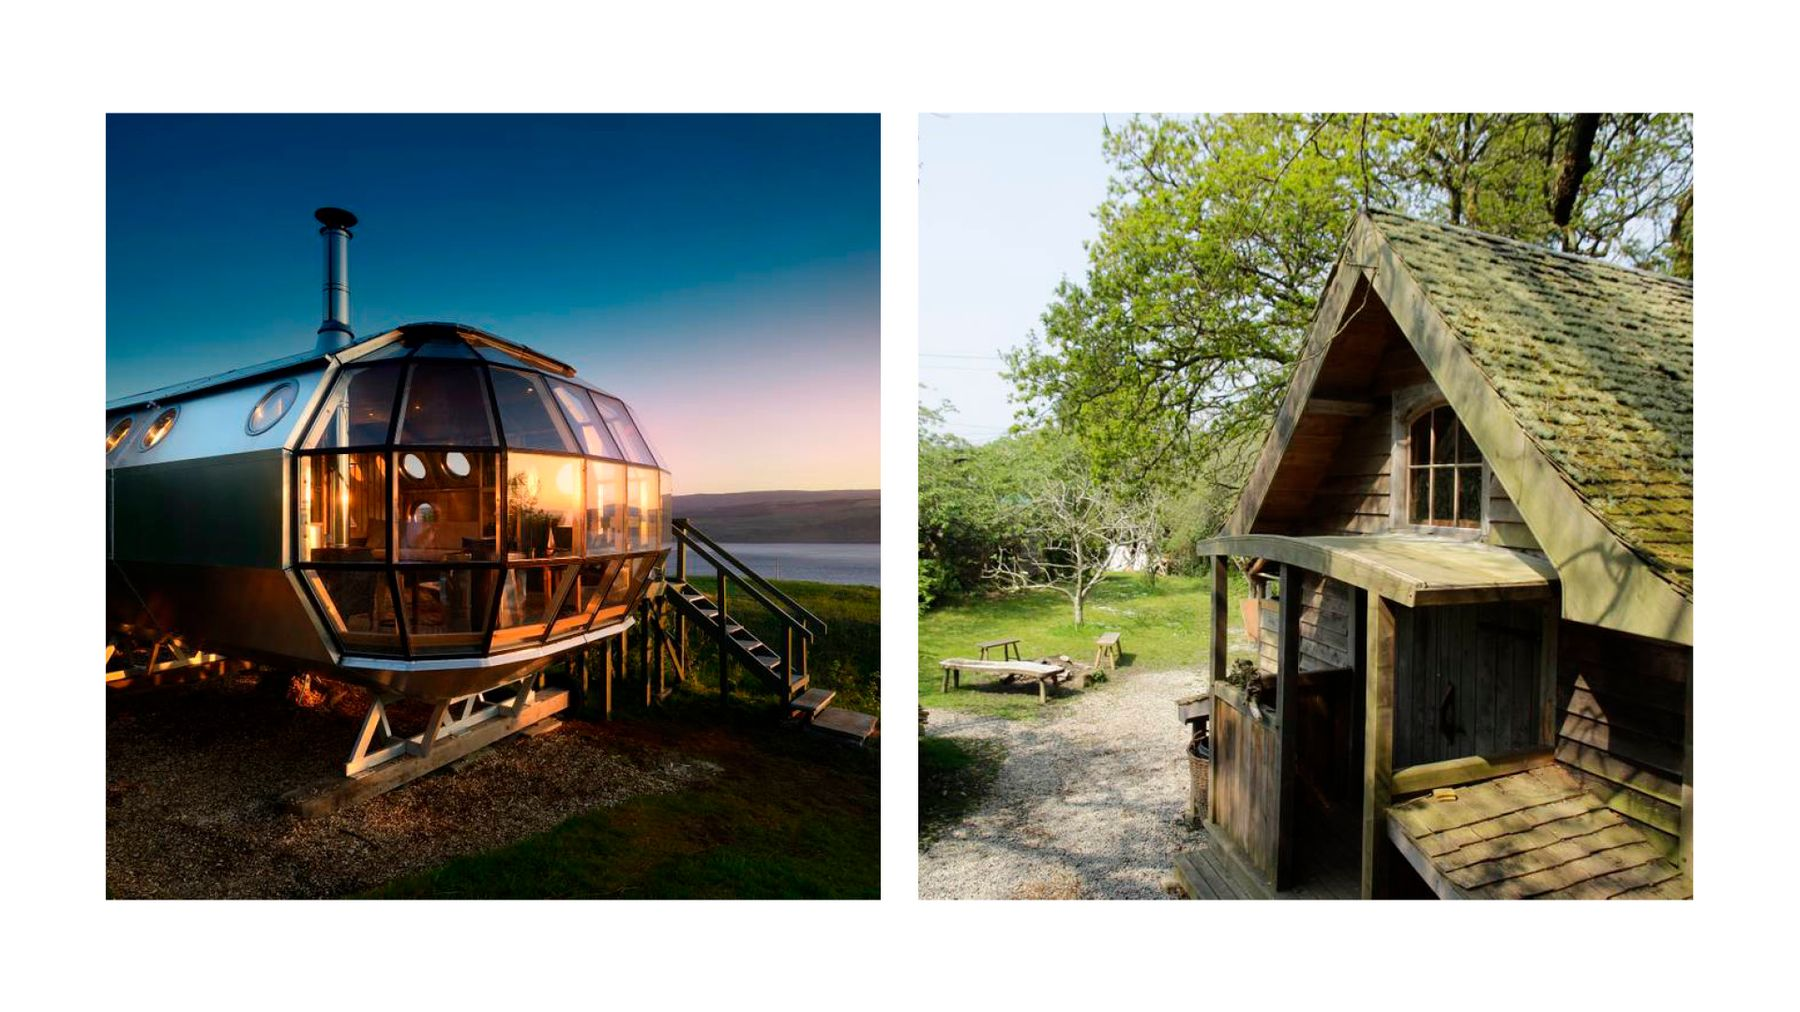 19 Of The Dreamiest Airbnb's Right Here In The UK   Grazia